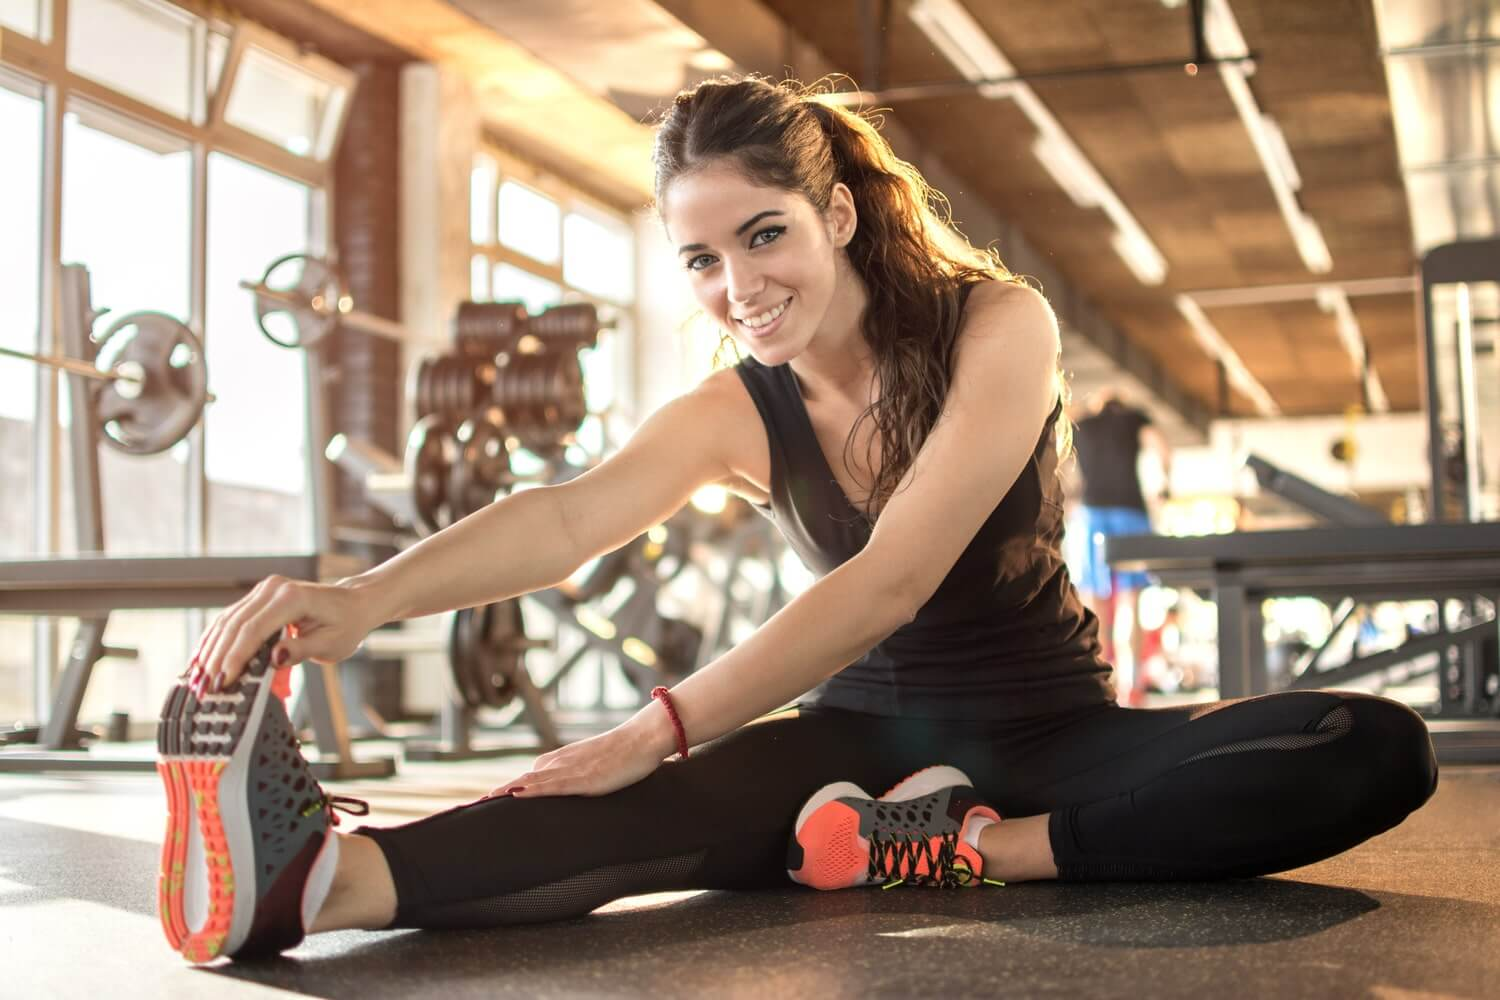 Young Australian woman stretches in the gym